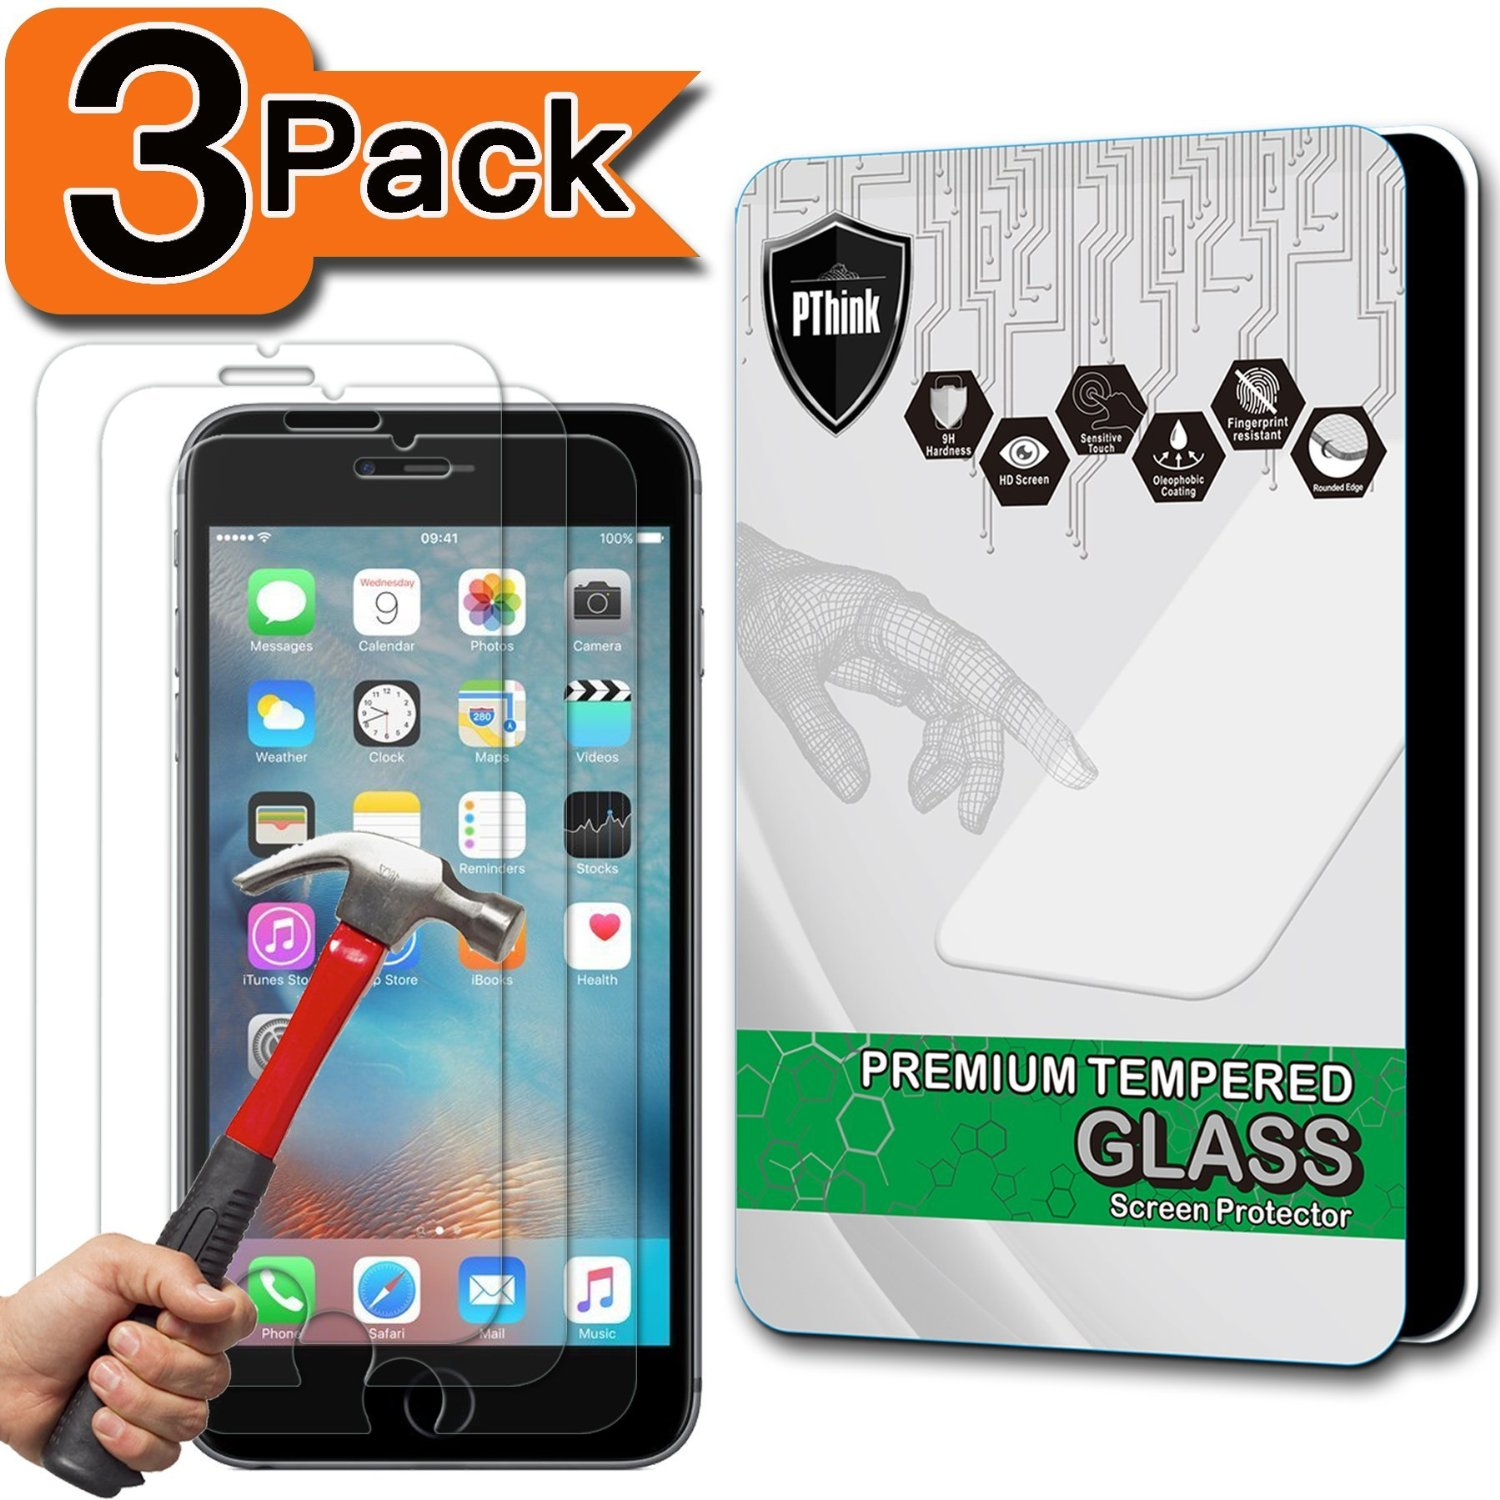 [3-Pack] iPhone 6s Plus Screen Protector, PThink [Tempered Glass] [9H Hardness] [Anti-Scratch] [Fingerprint Resistant] [Easy-Install] Glass Screen Protector for iPhone 6 Plus / 6s Plus (3-Pack)